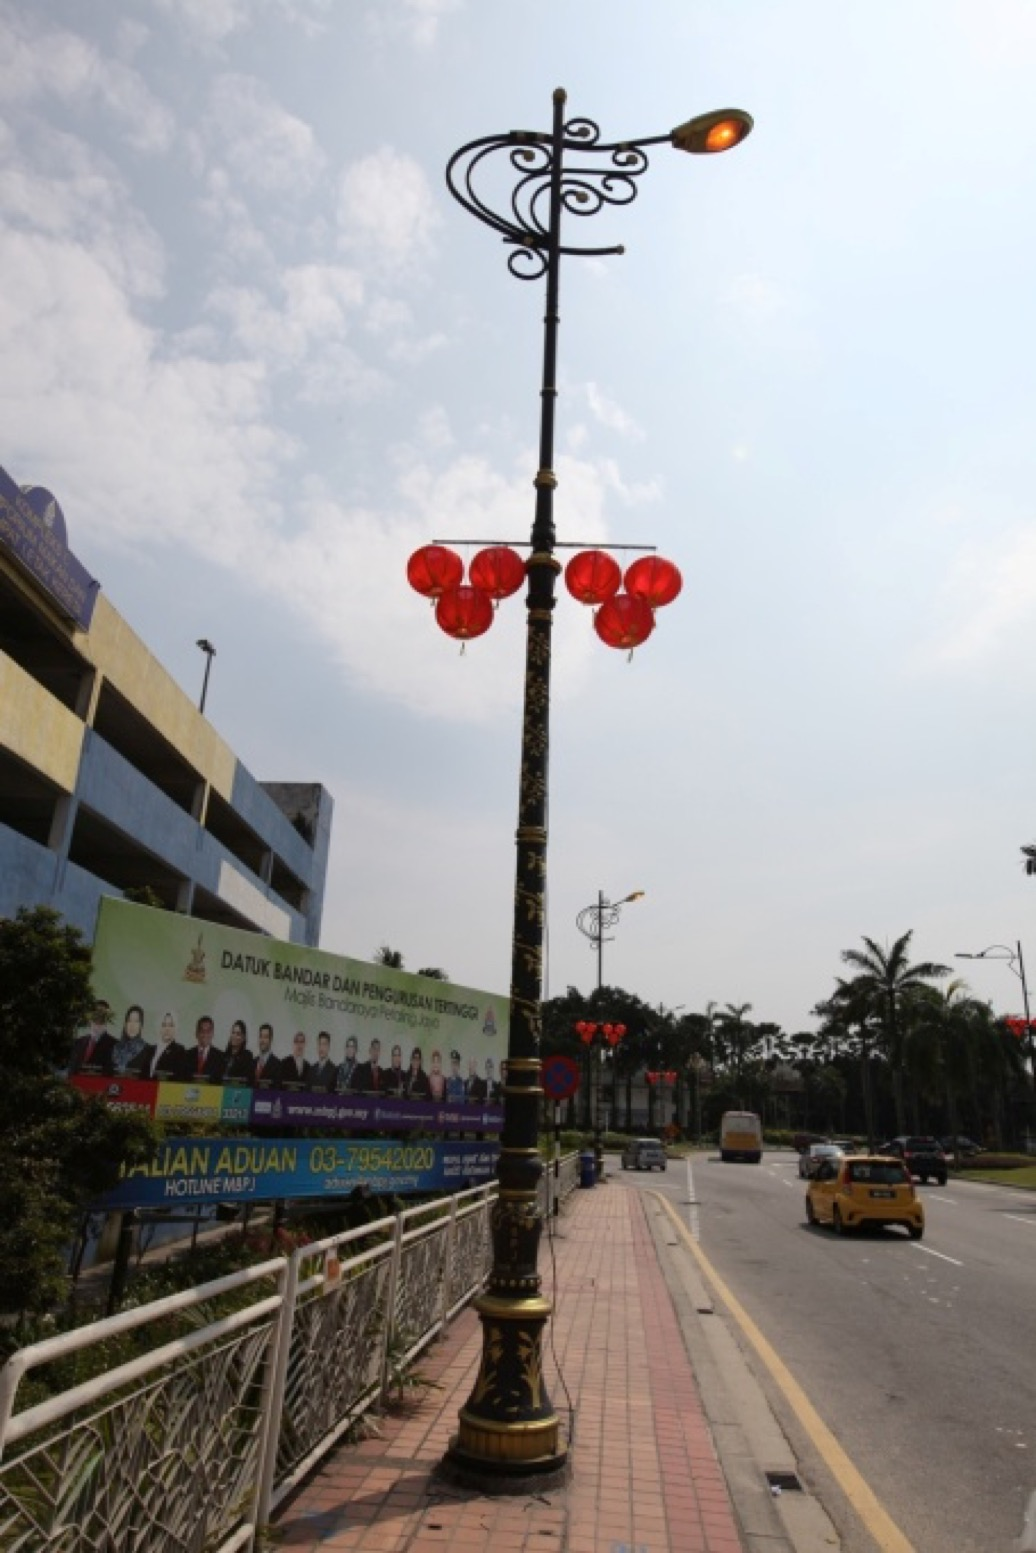 MALAYSIA STREET LAMP PROJECT